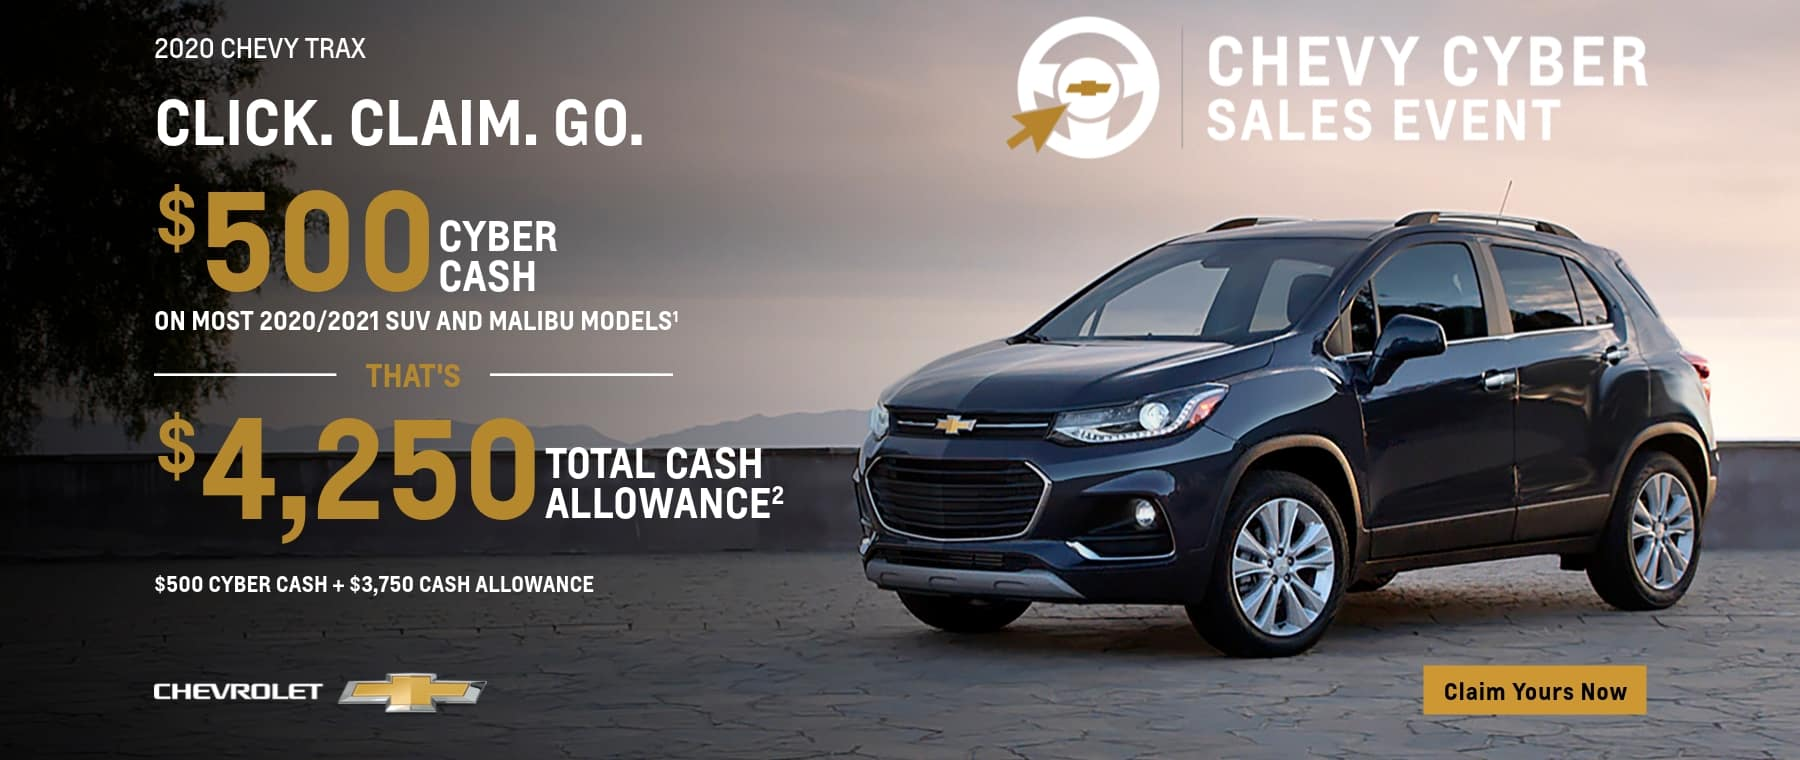 Cyber Sales on the Chevy Trax